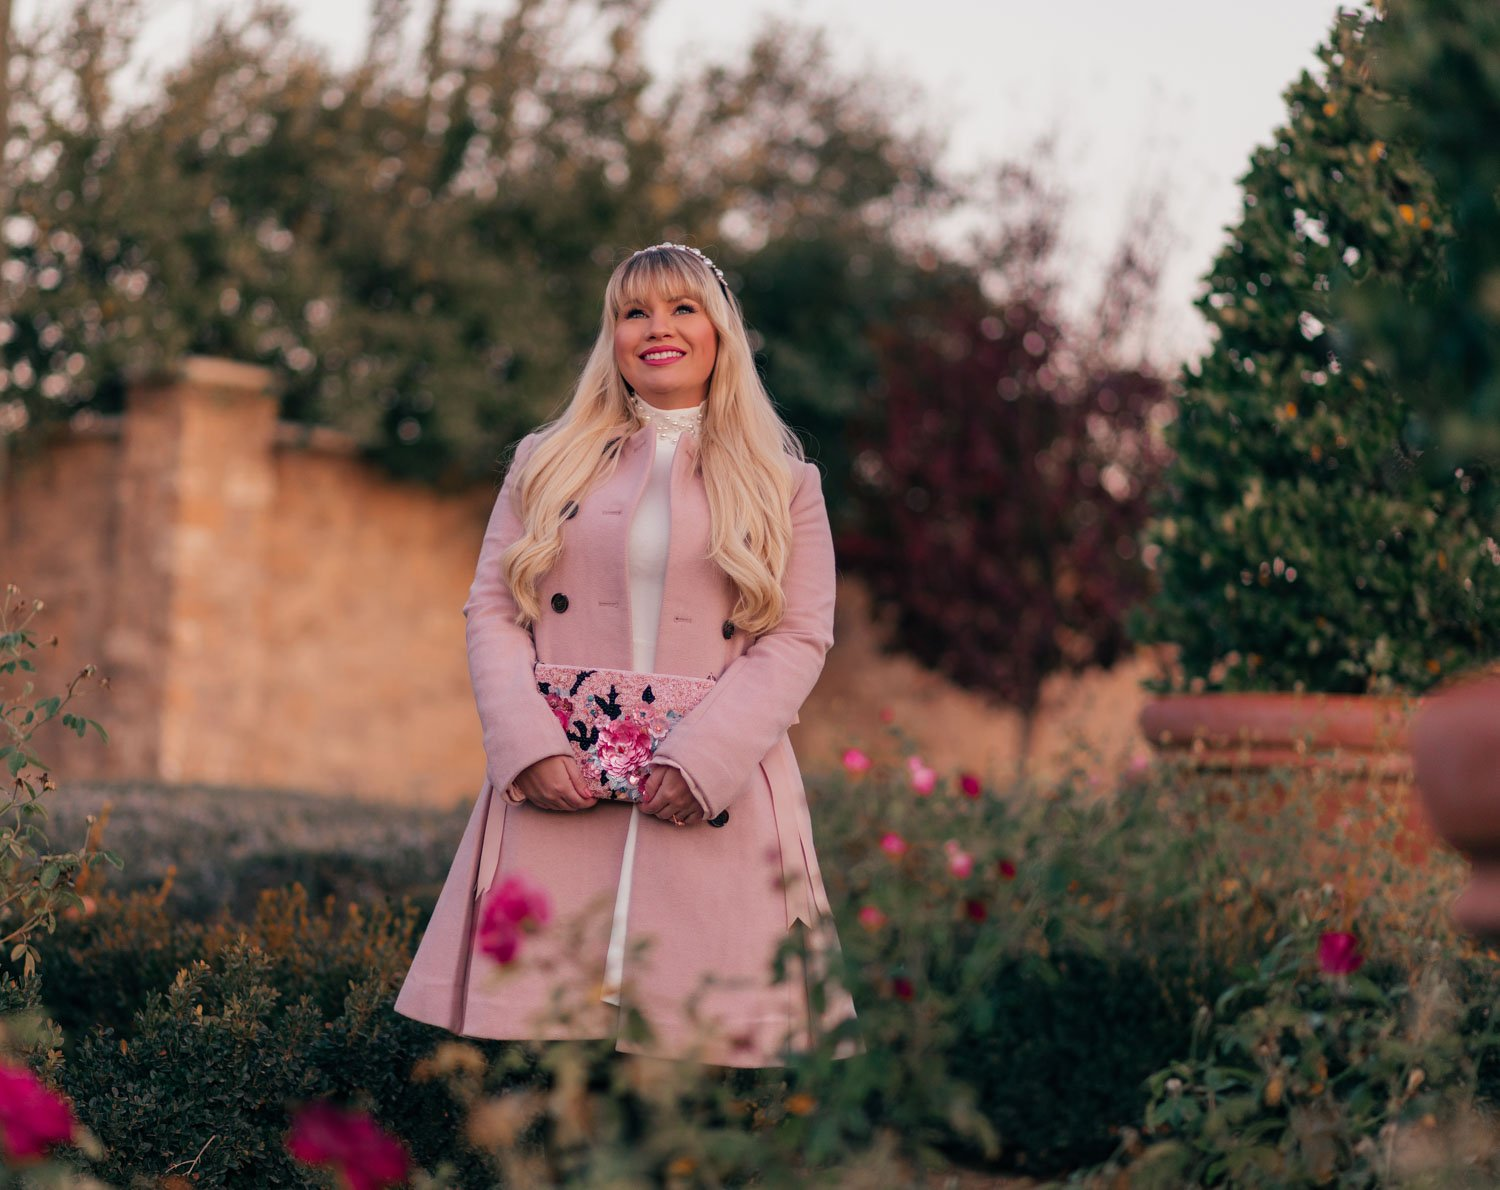 Elizabeth Hugen of Lizzie in Lace styles a feminine white and pink winter outfit